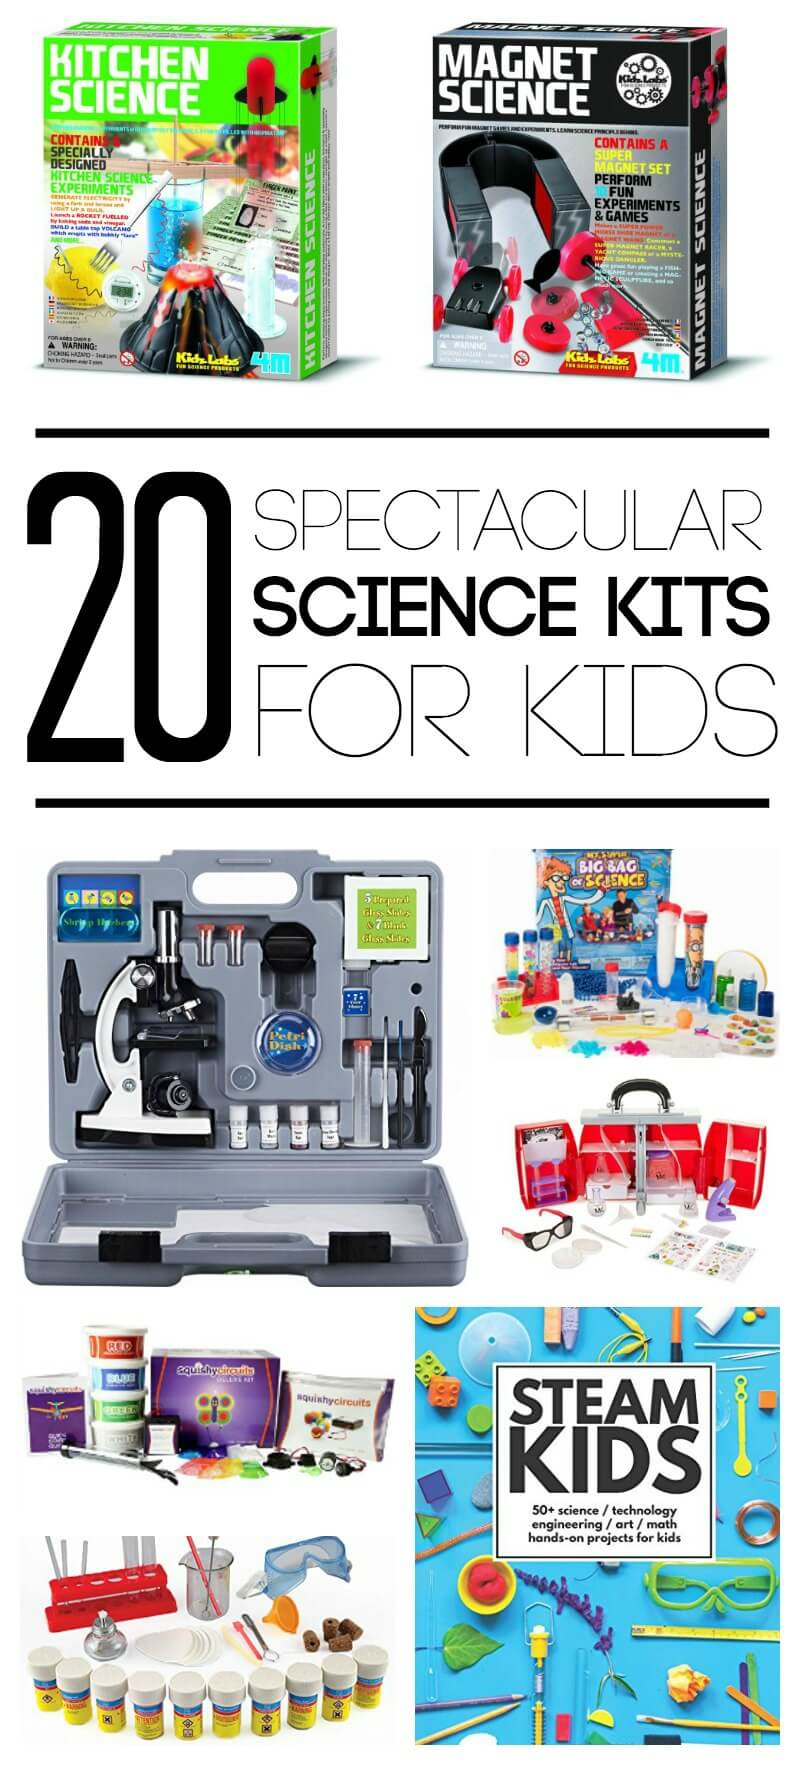 Spectacular Science Kits for Kids